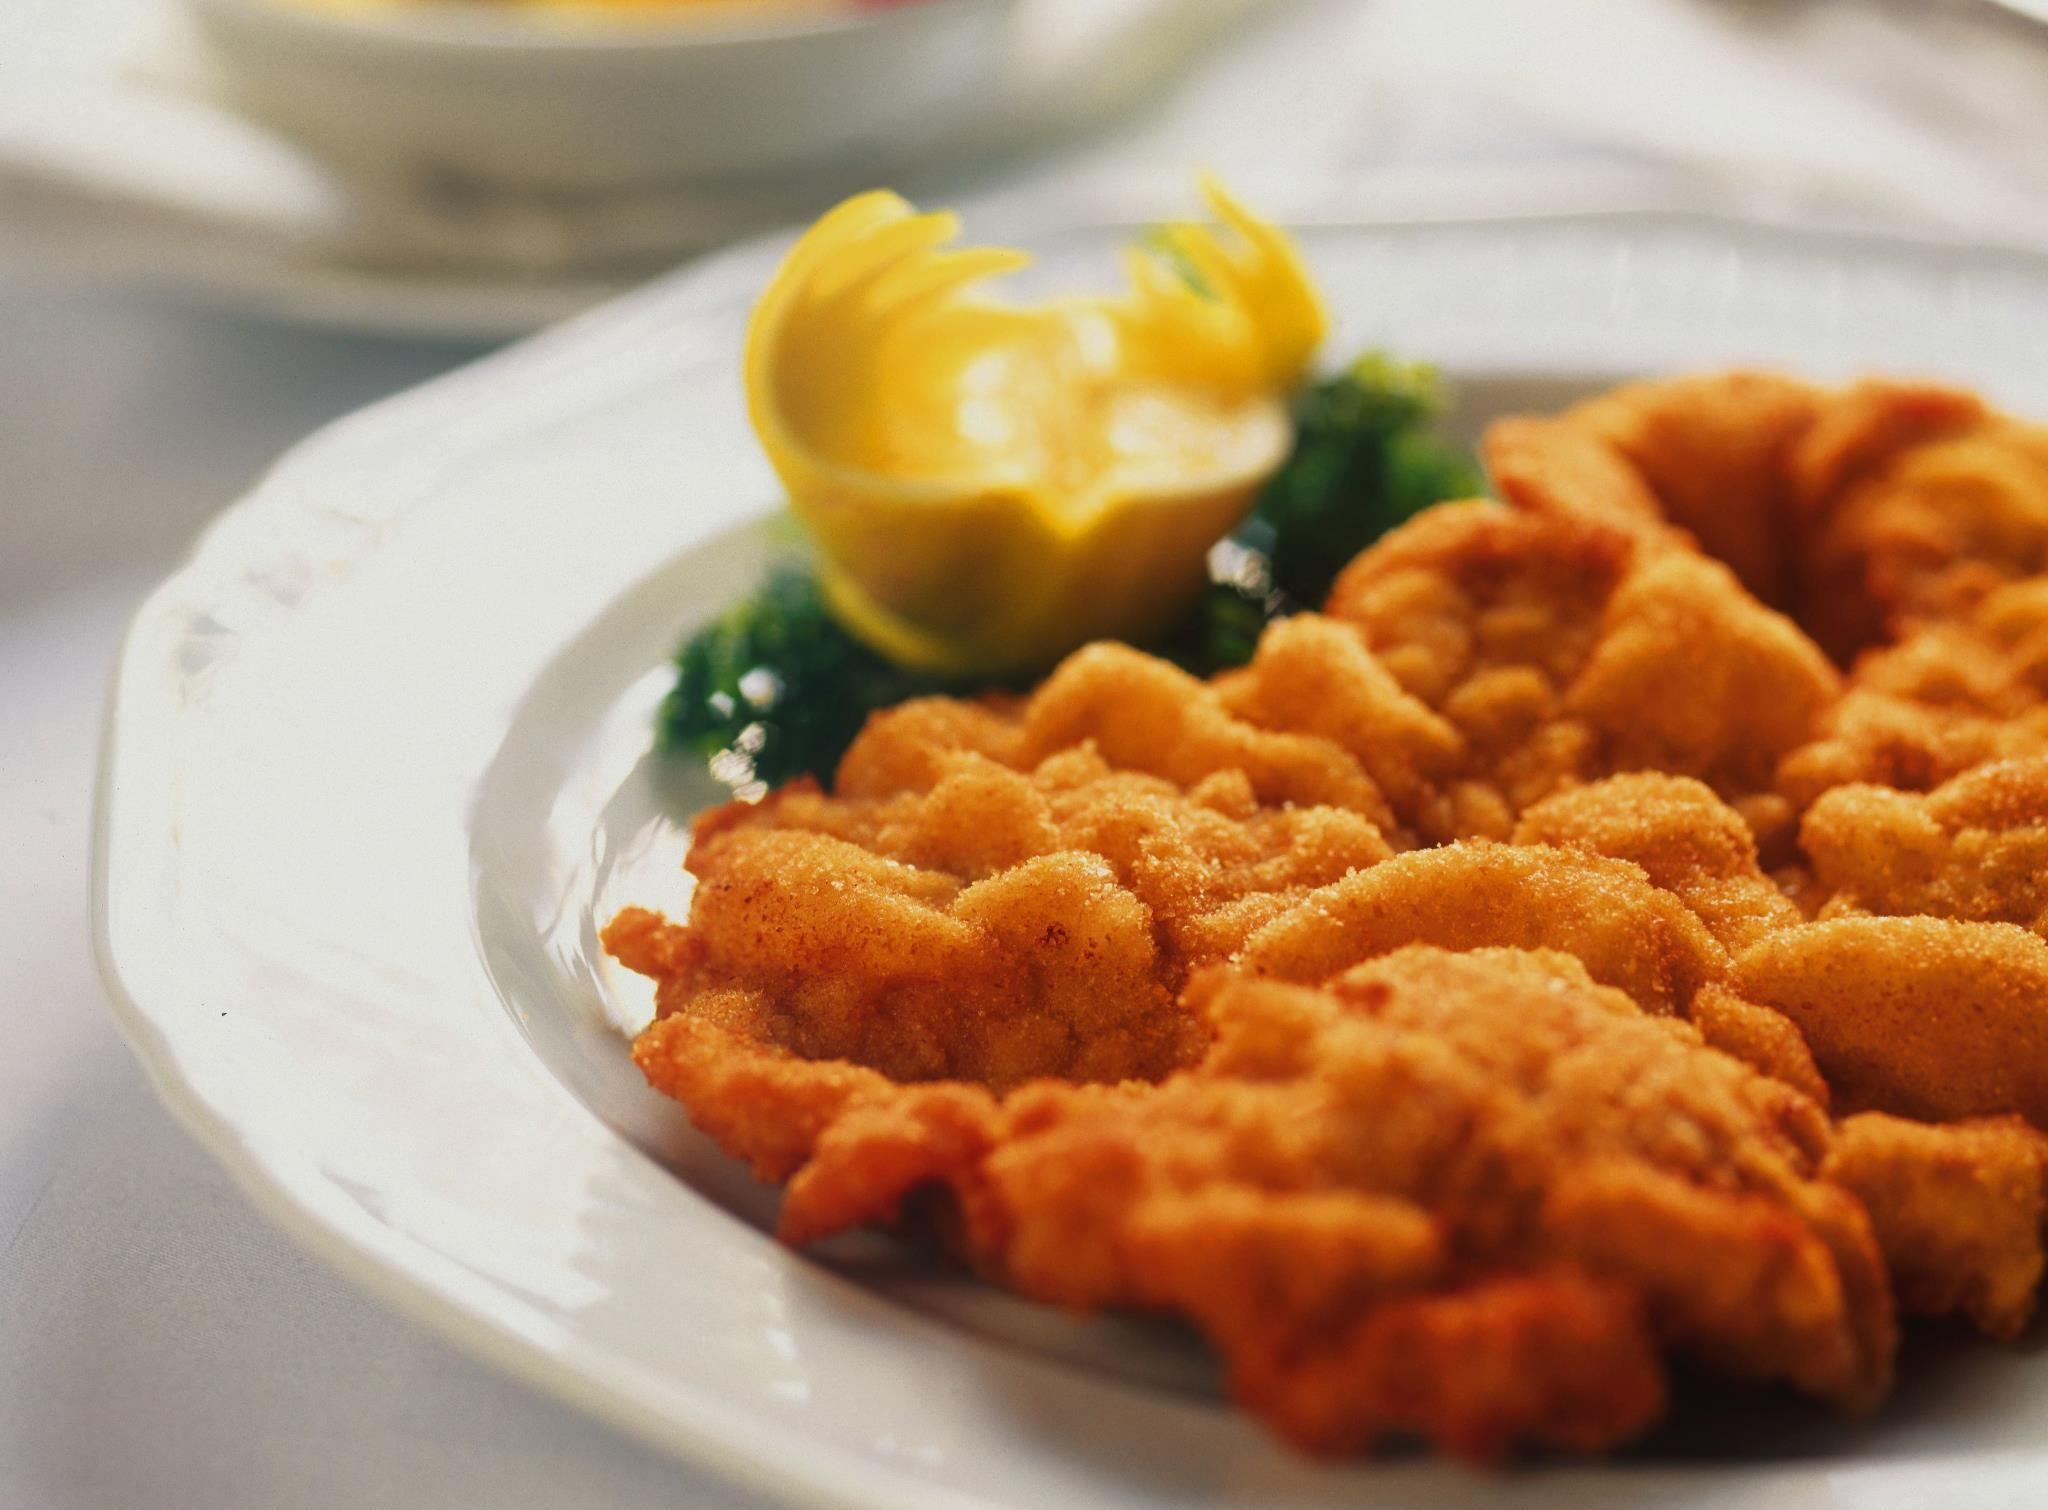 Wiener Schnitzel I Love It Wiener Schnitzel Is My Favorite Food